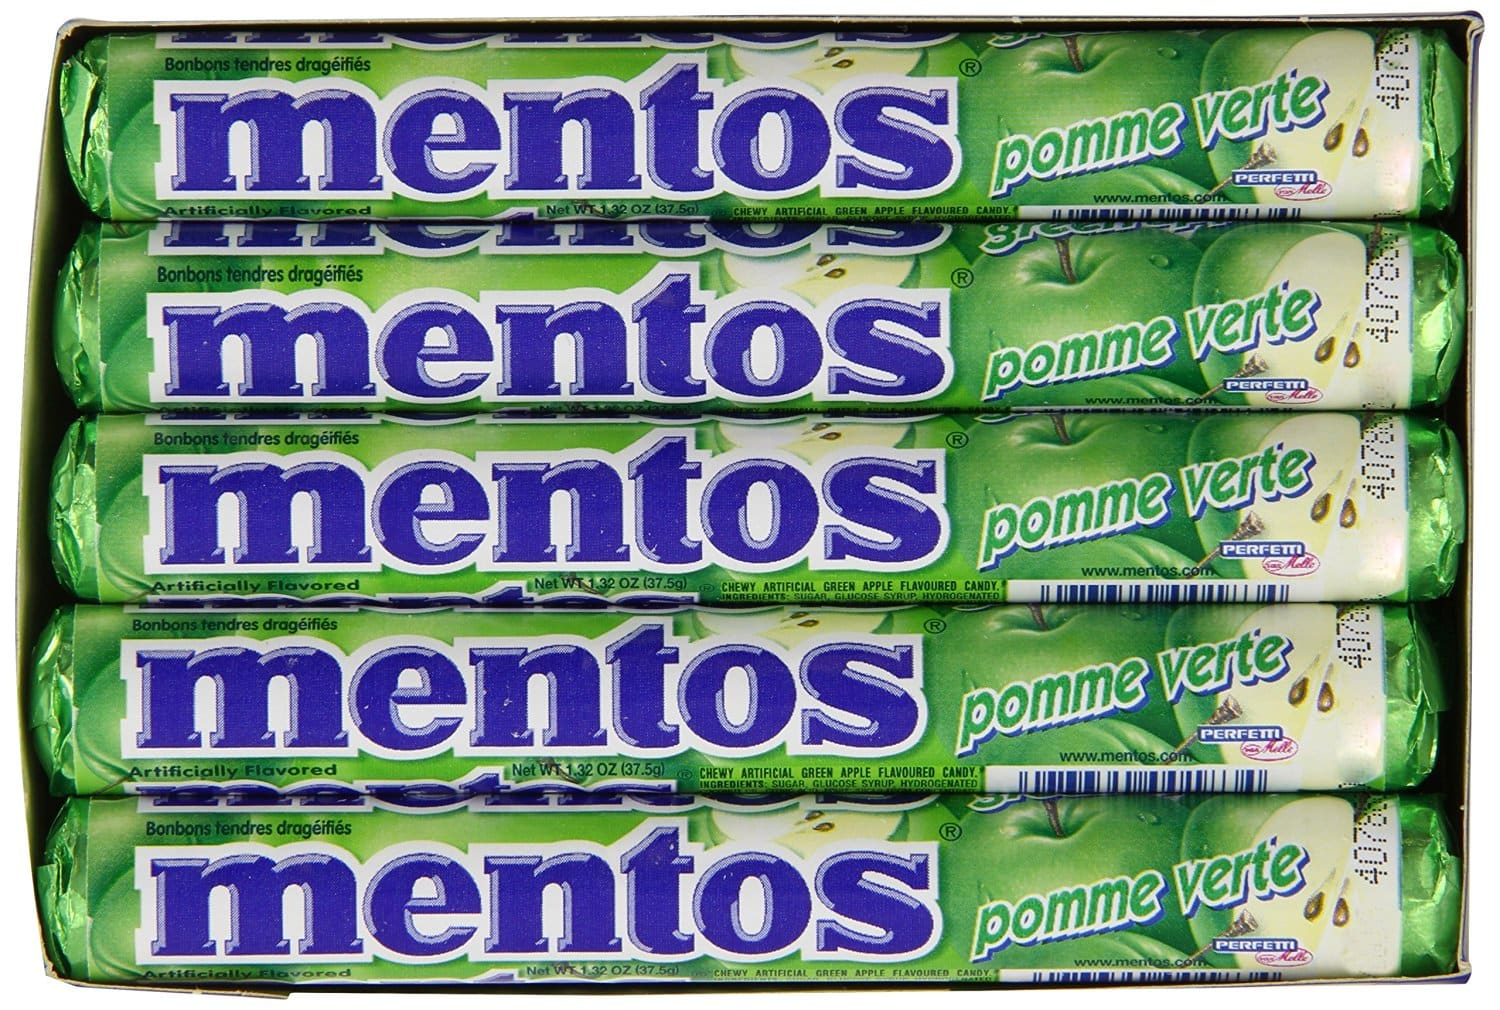 15-Pack 1.32oz Mentos Rolls (Rainbow)  $7.30 + Free Shipping